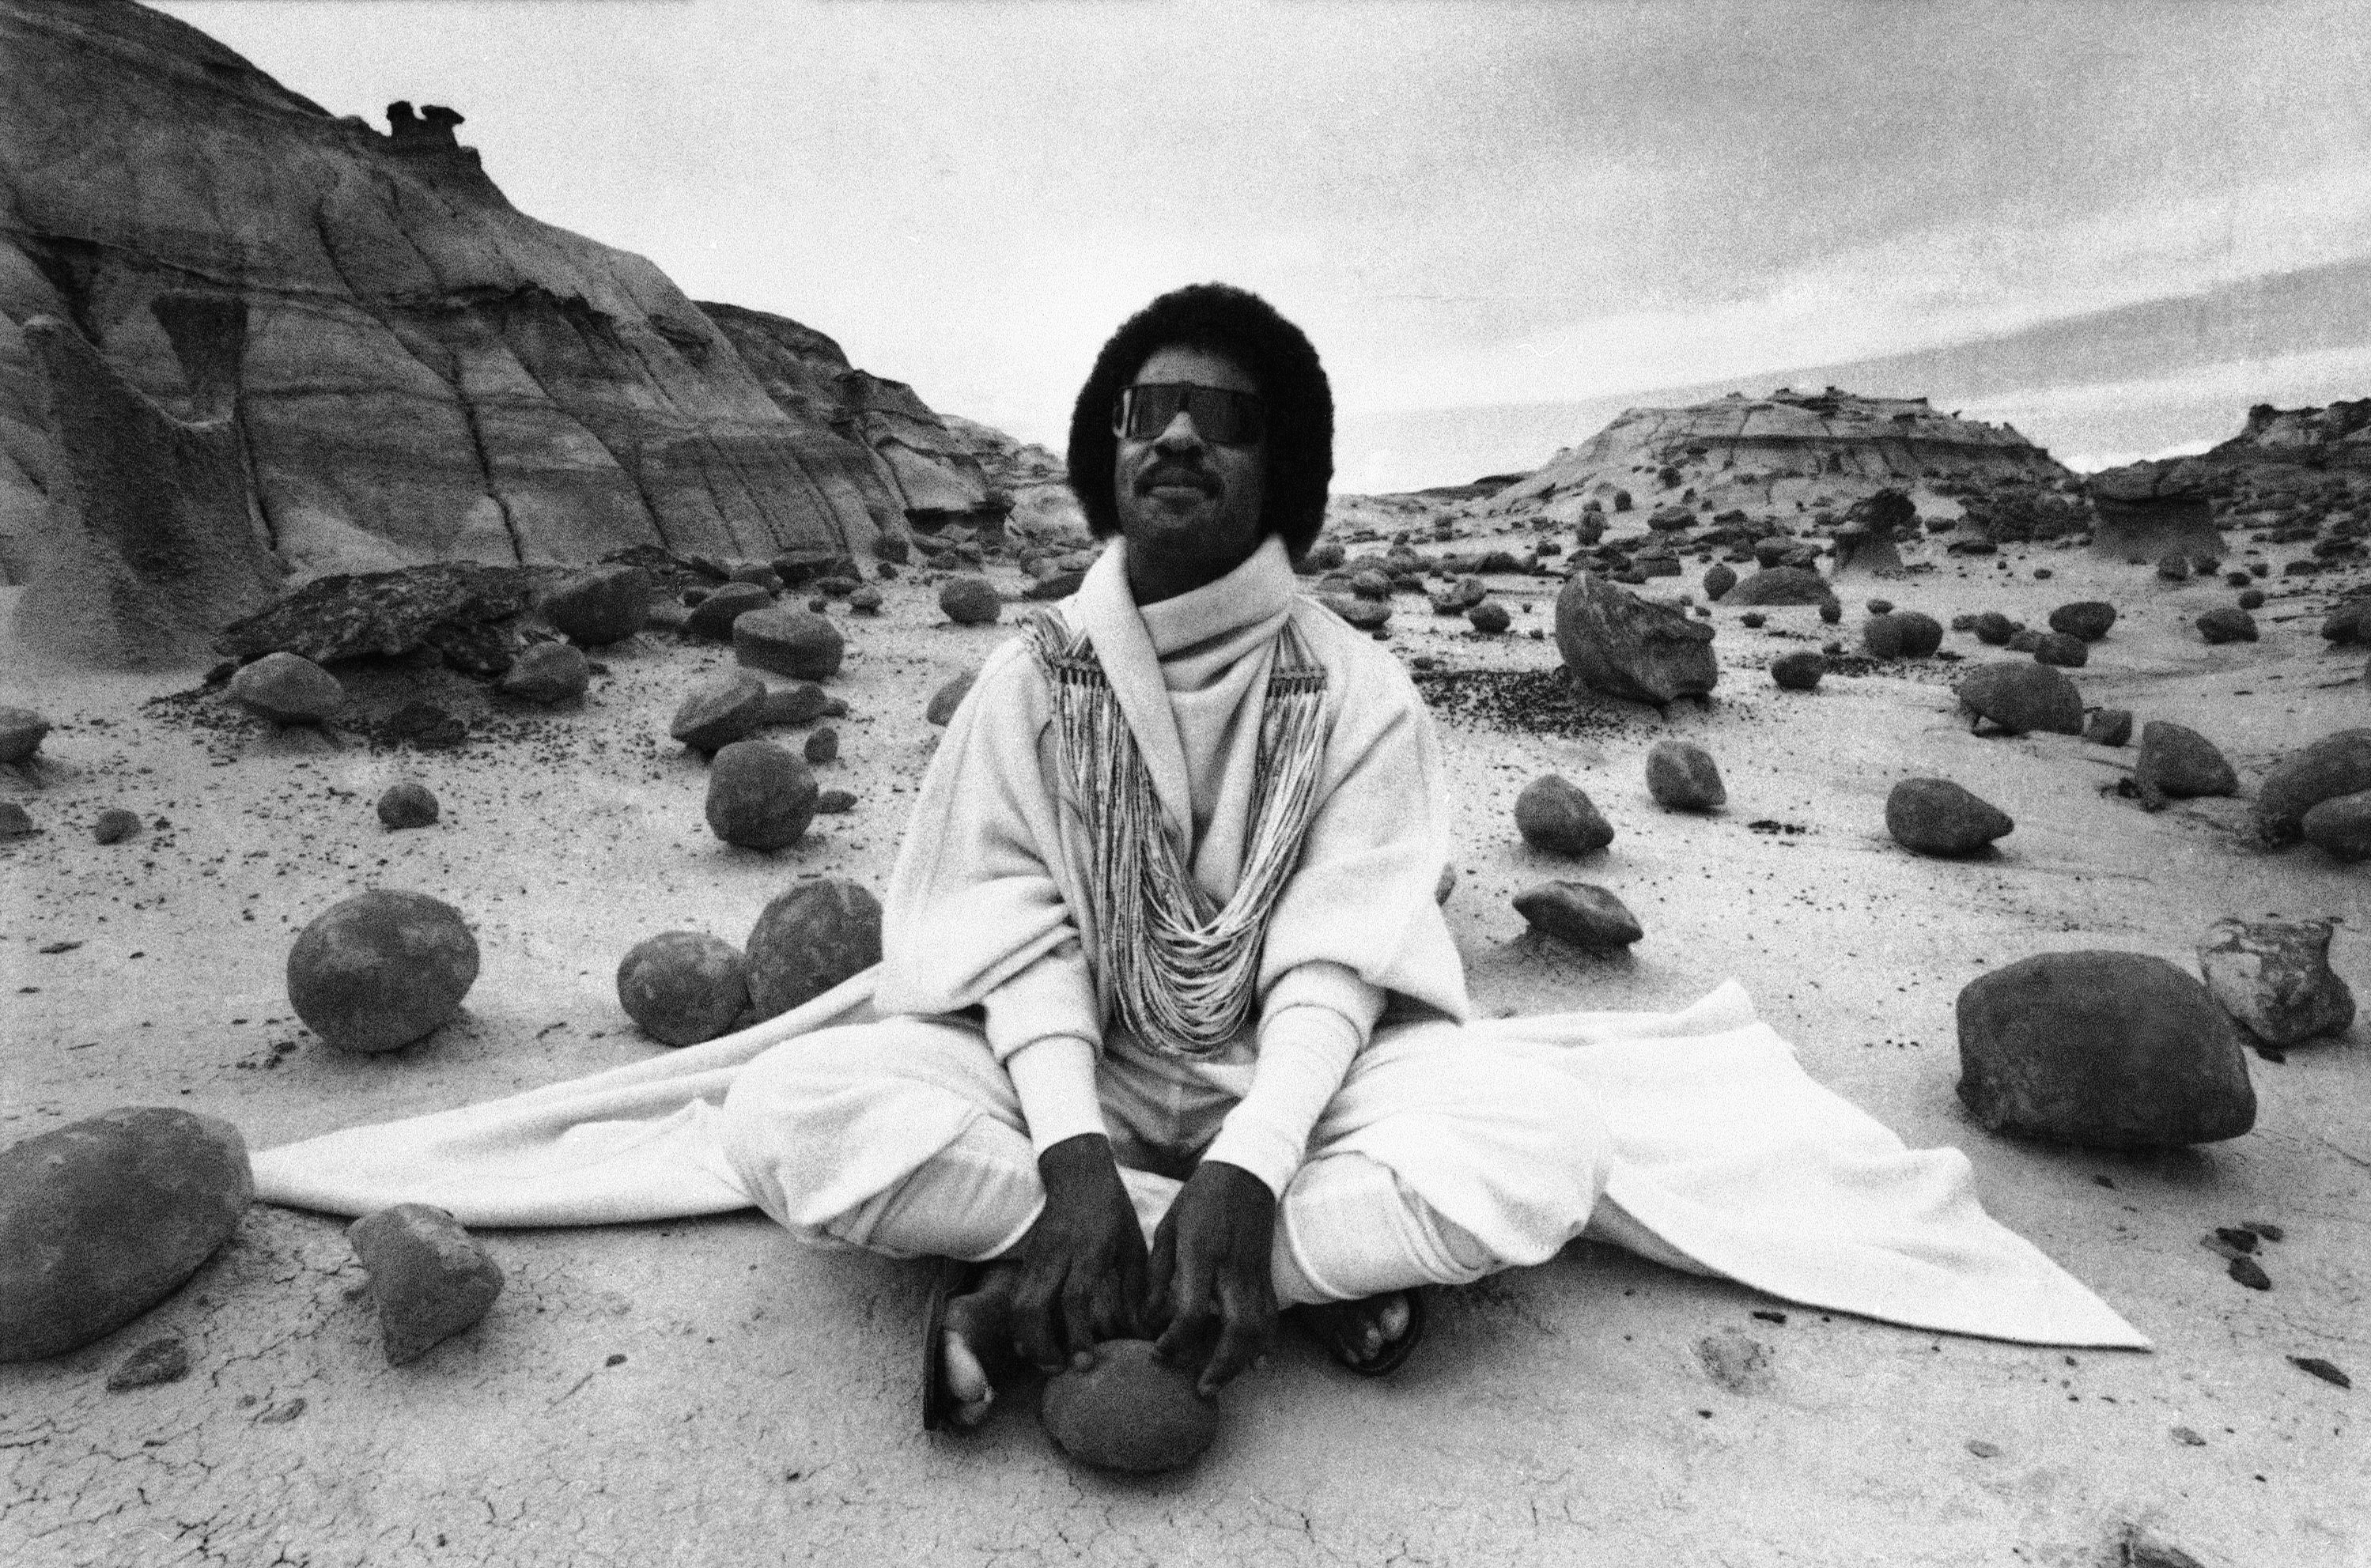 Musician Stevie Wonder sits amidst the eerie rocks of the Bisti Badlands in Farmington, New Mexico, Sept. 1, 1982, filming a commercial probably never seen in the United States. (AP Photo)